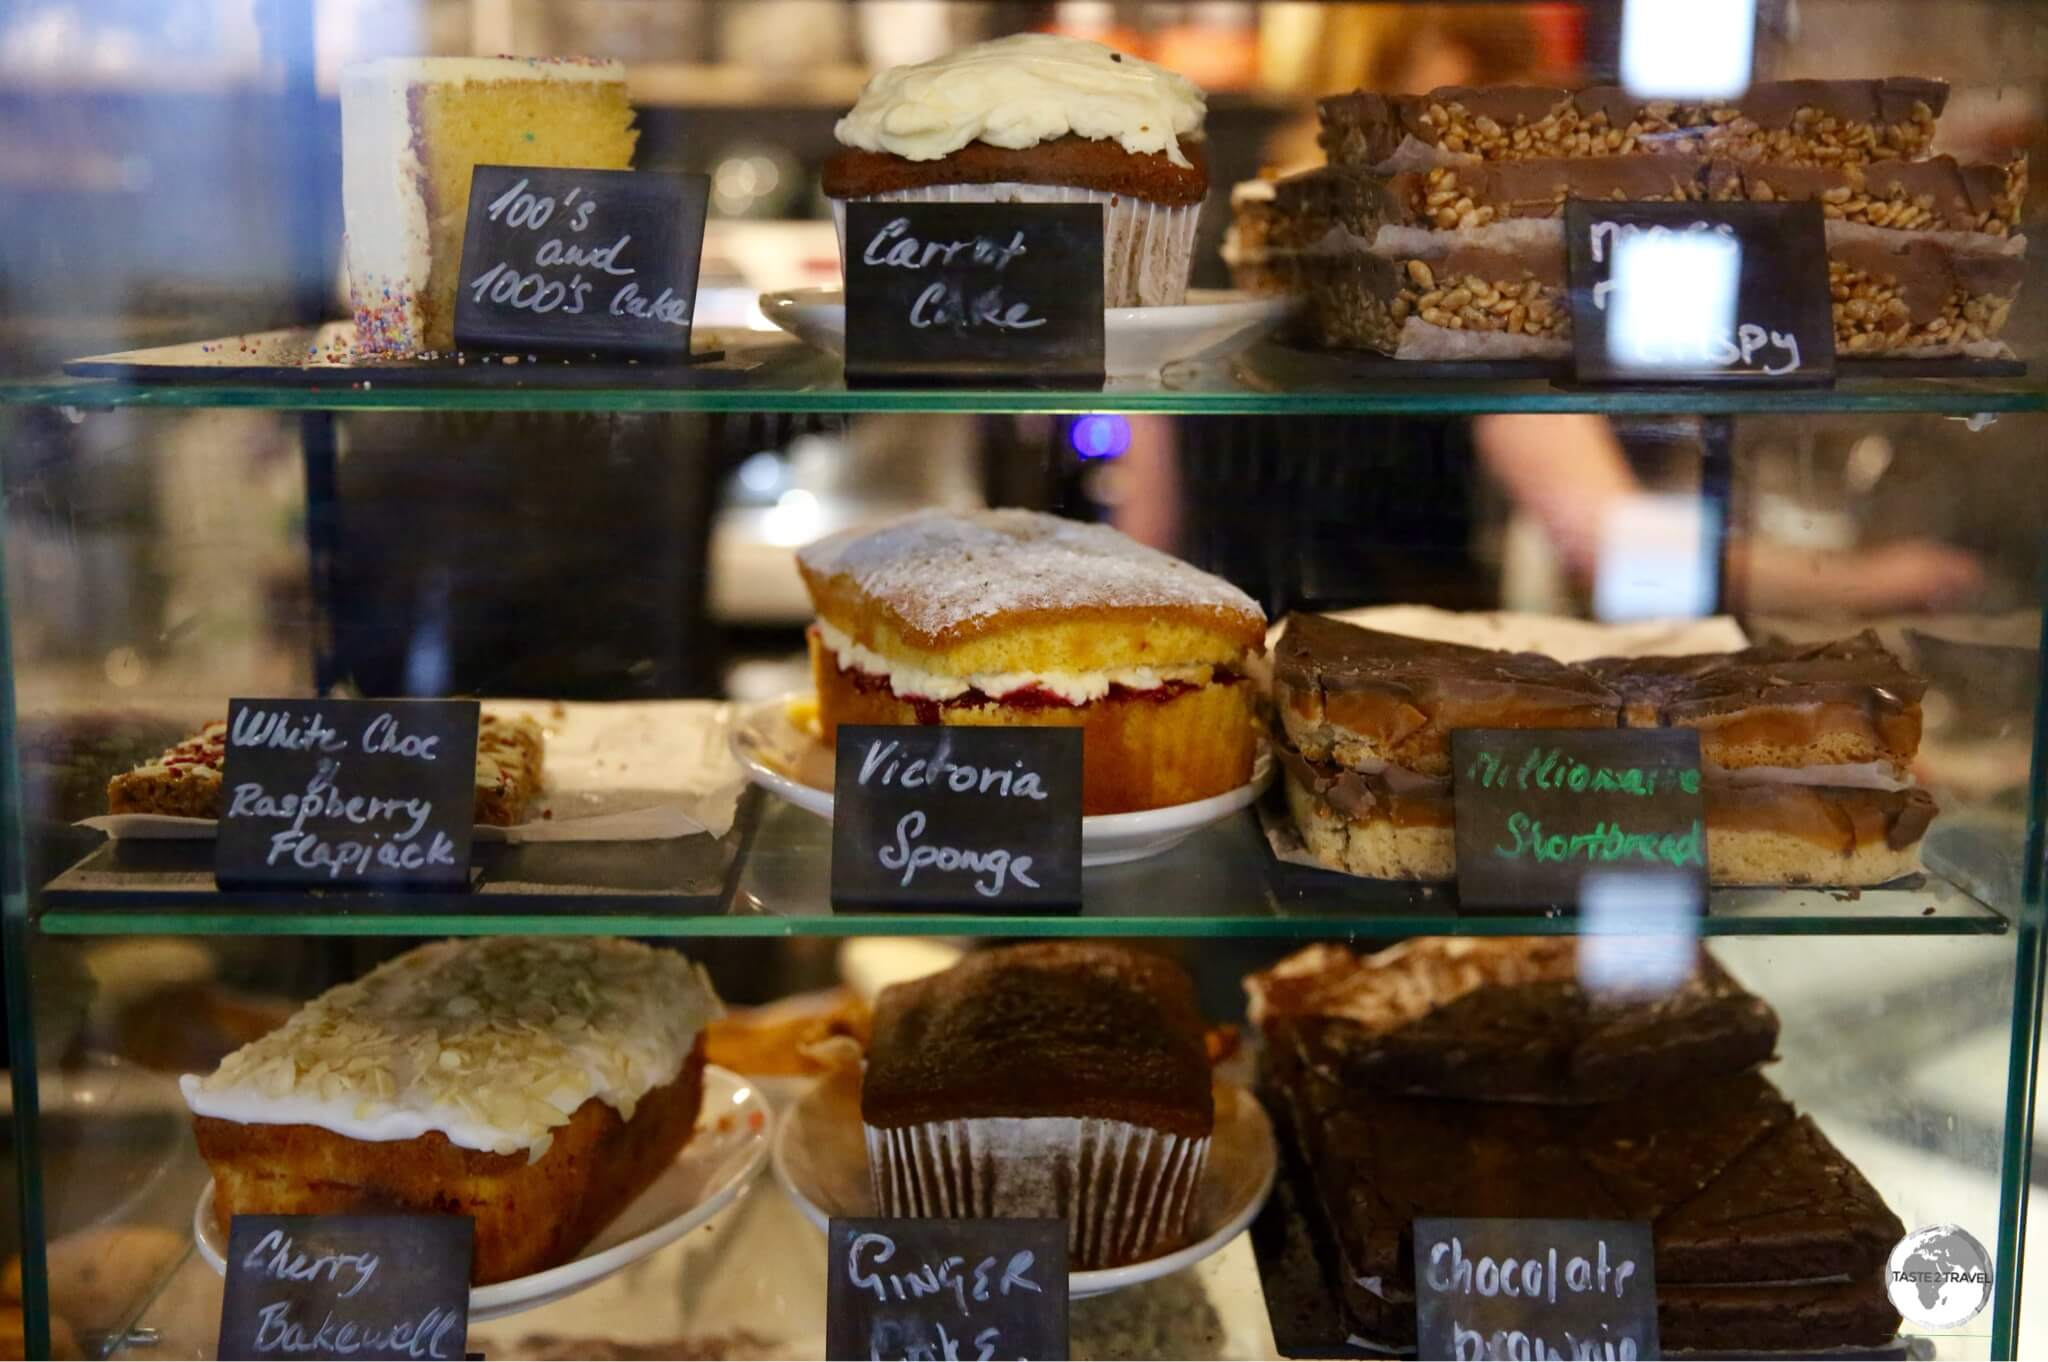 The amazing cake selection at the very remote 'Sound Cafe'.